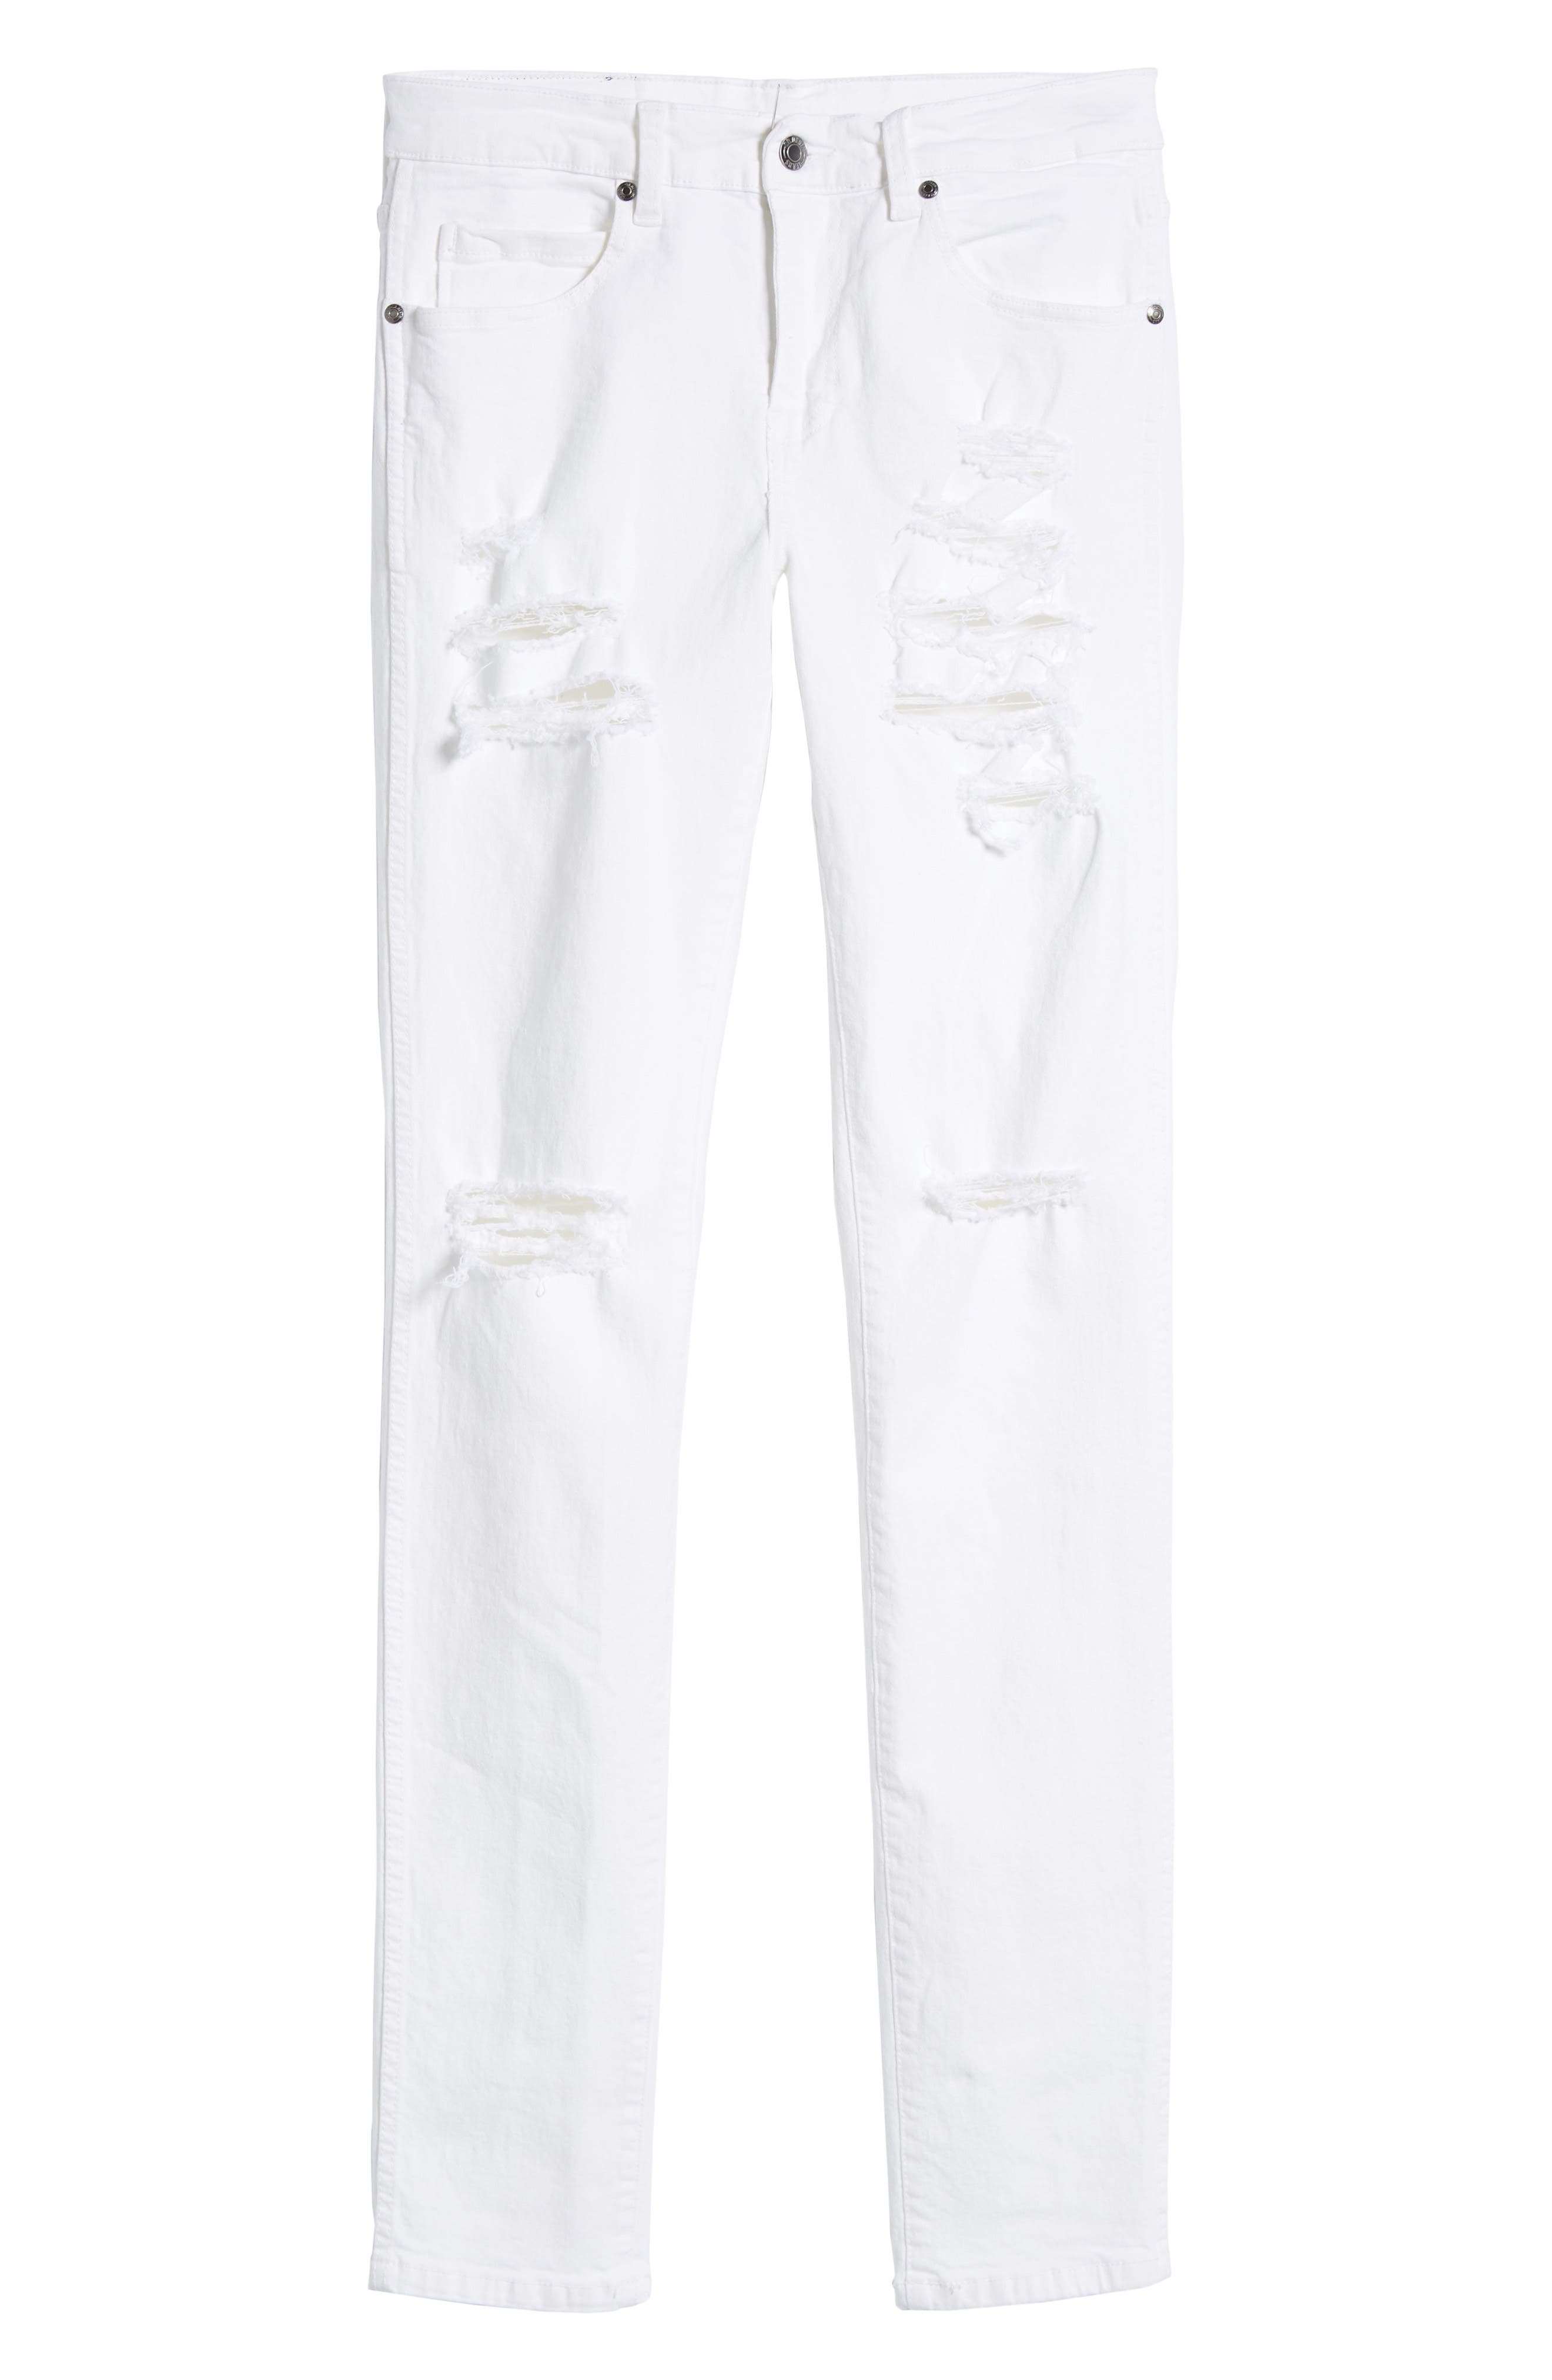 Snap Skinny Fit Jeans,                             Alternate thumbnail 6, color,                             WHITE RIPPED